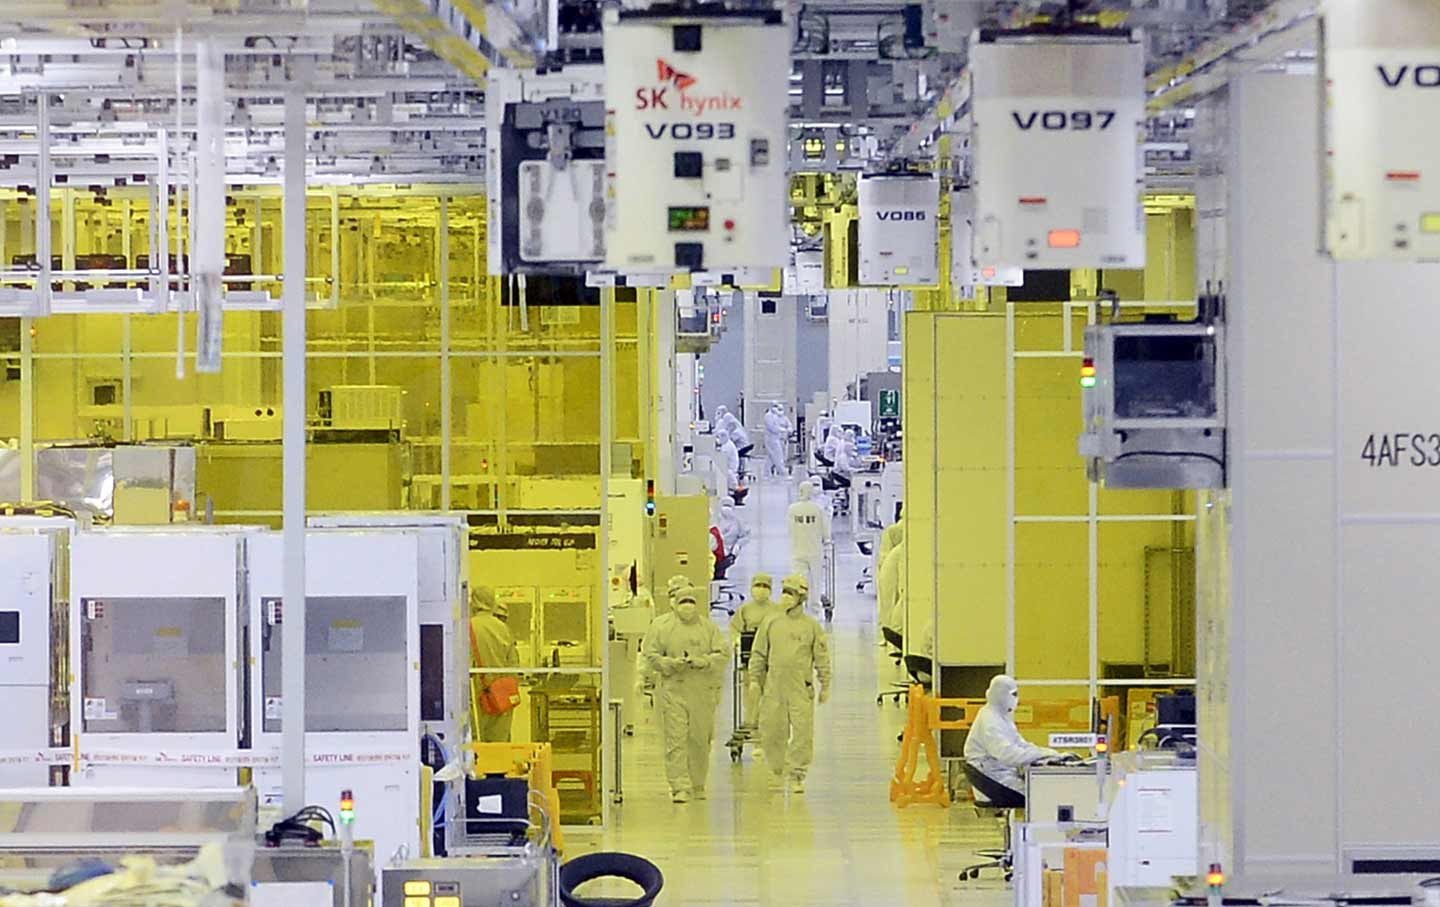 SK Hynix workers